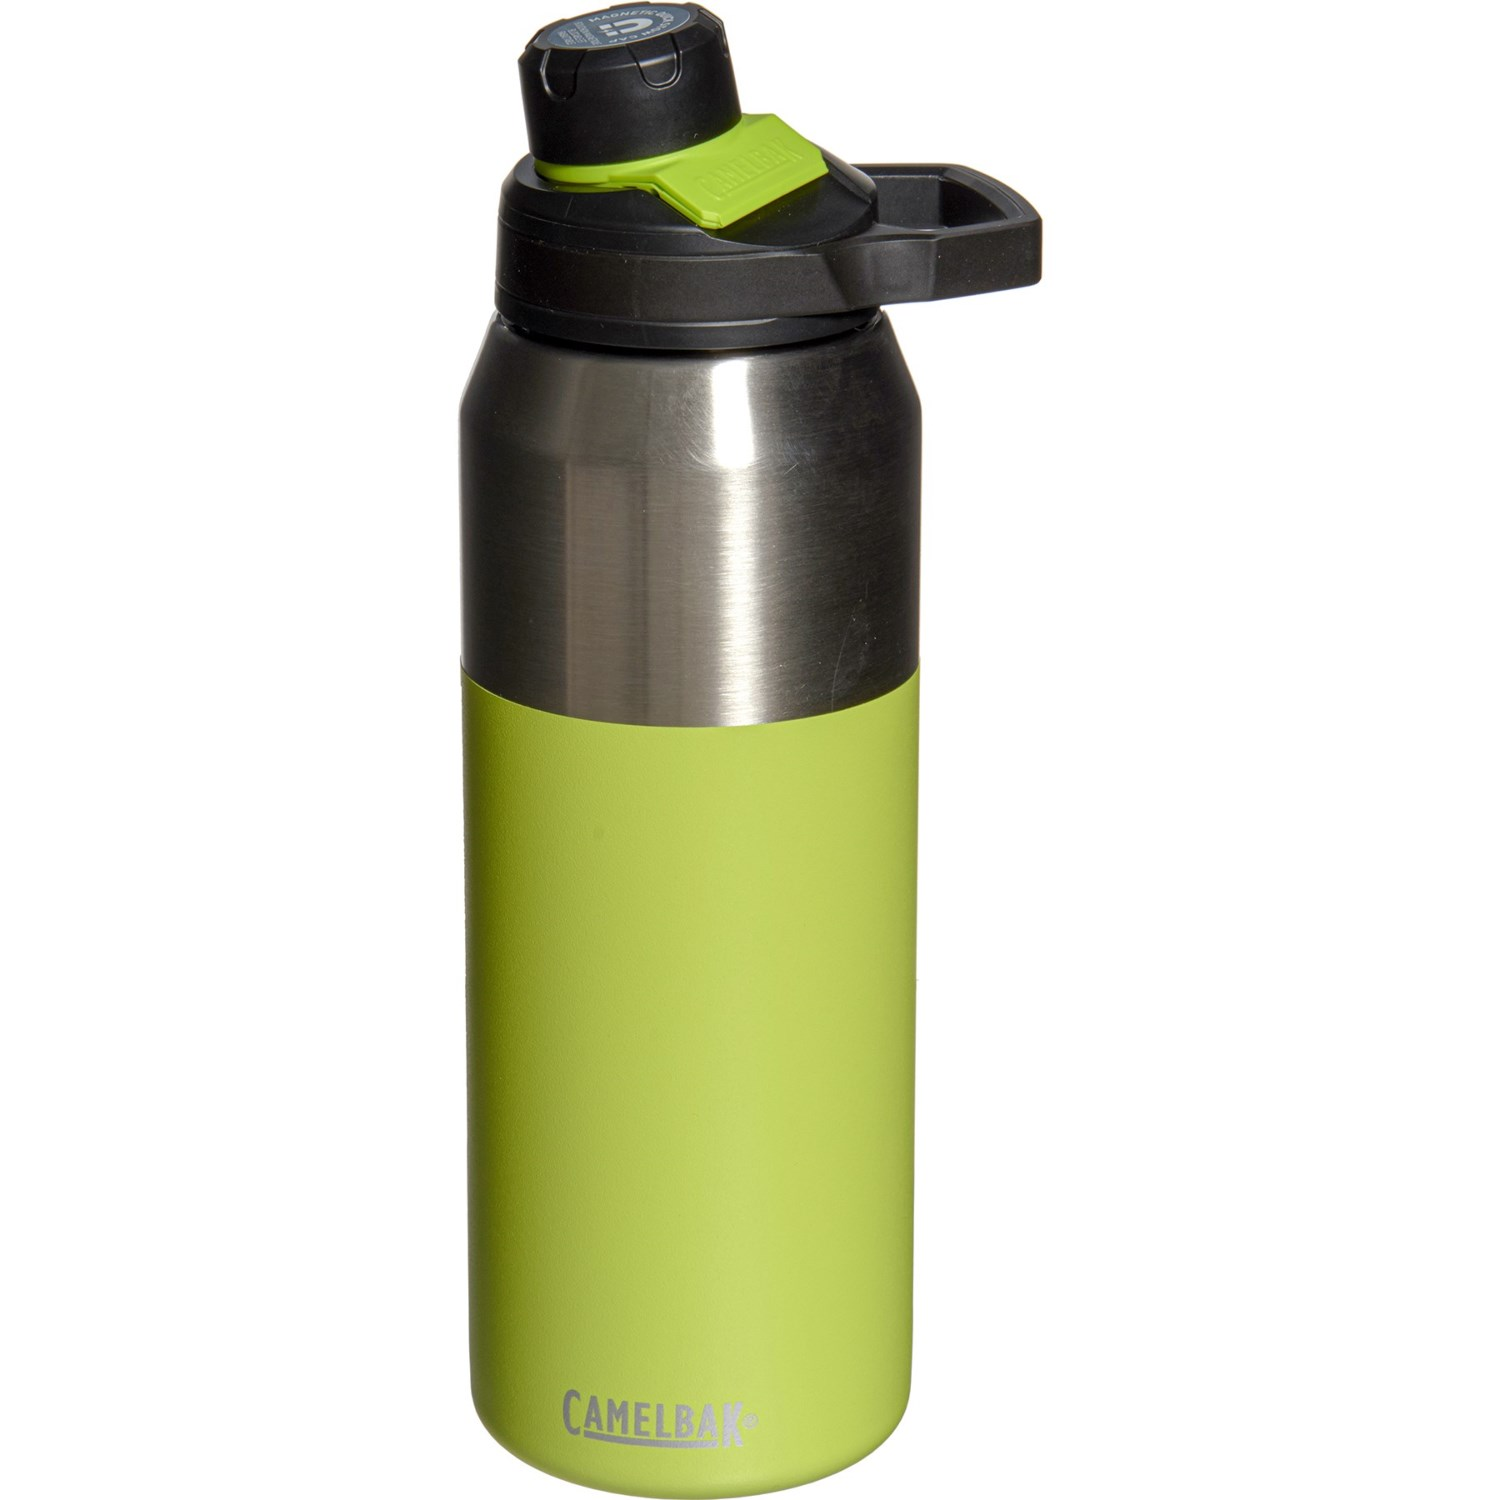 Camelbak Chute Mag Vacuum Insulated Water Bottle 32 Oz Stainless Steel Save 33